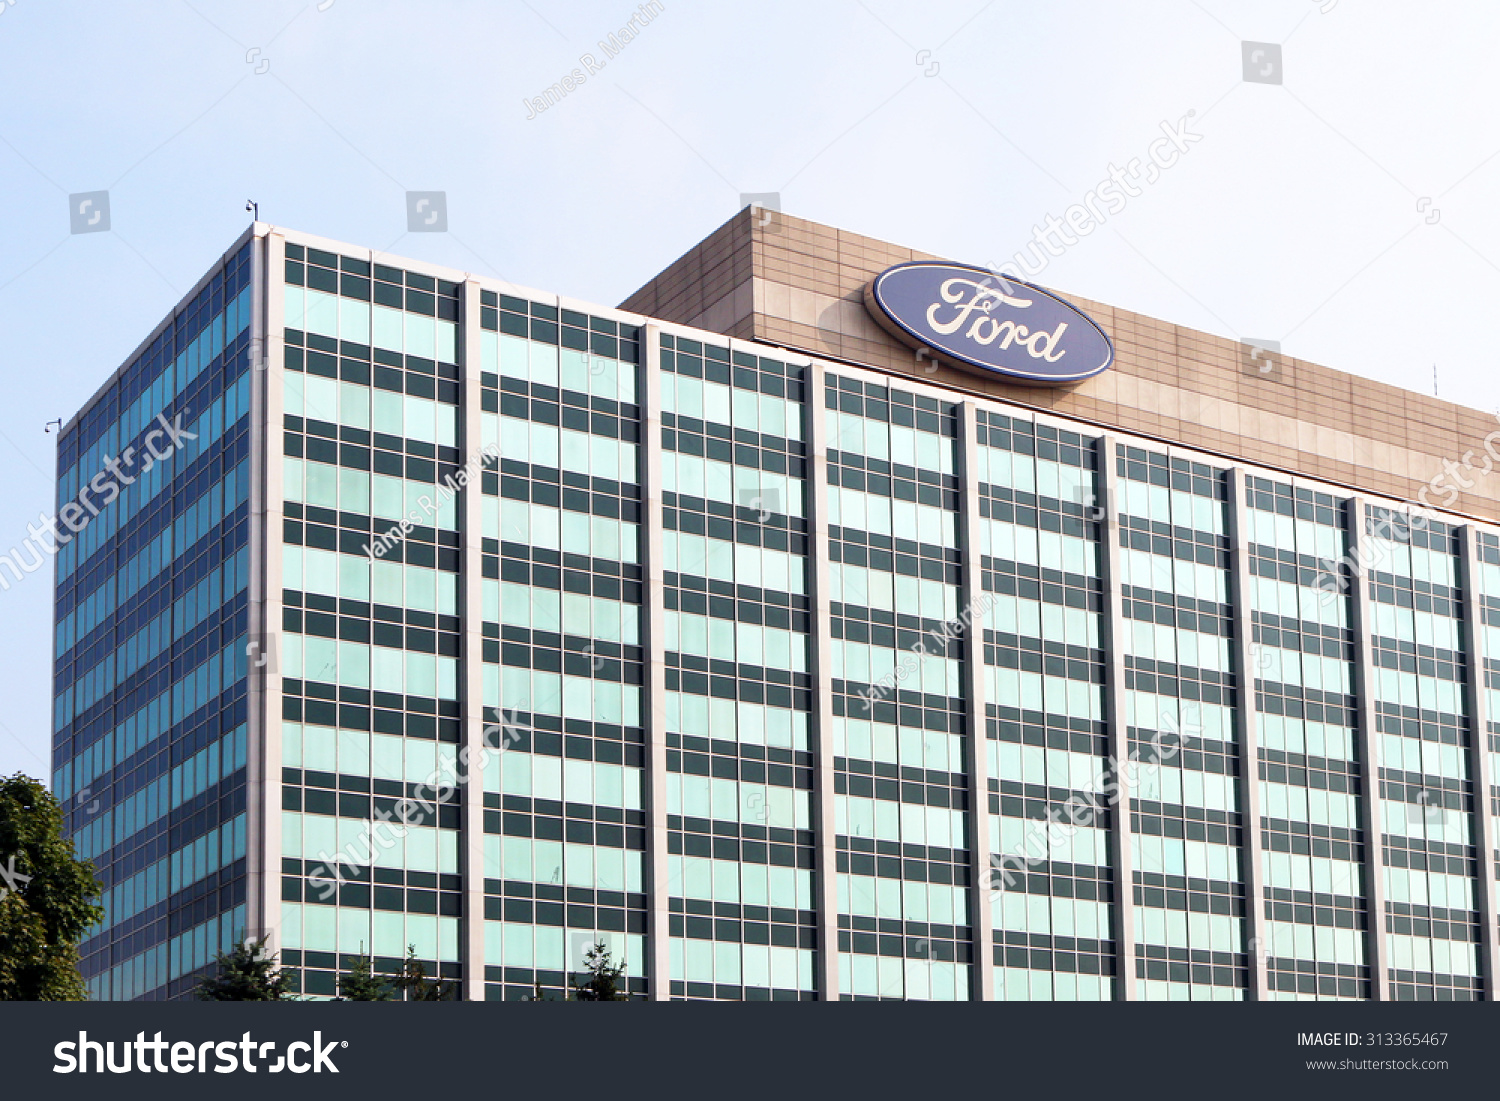 Dearborn mi august 2015 ford motor company world headquarters also known